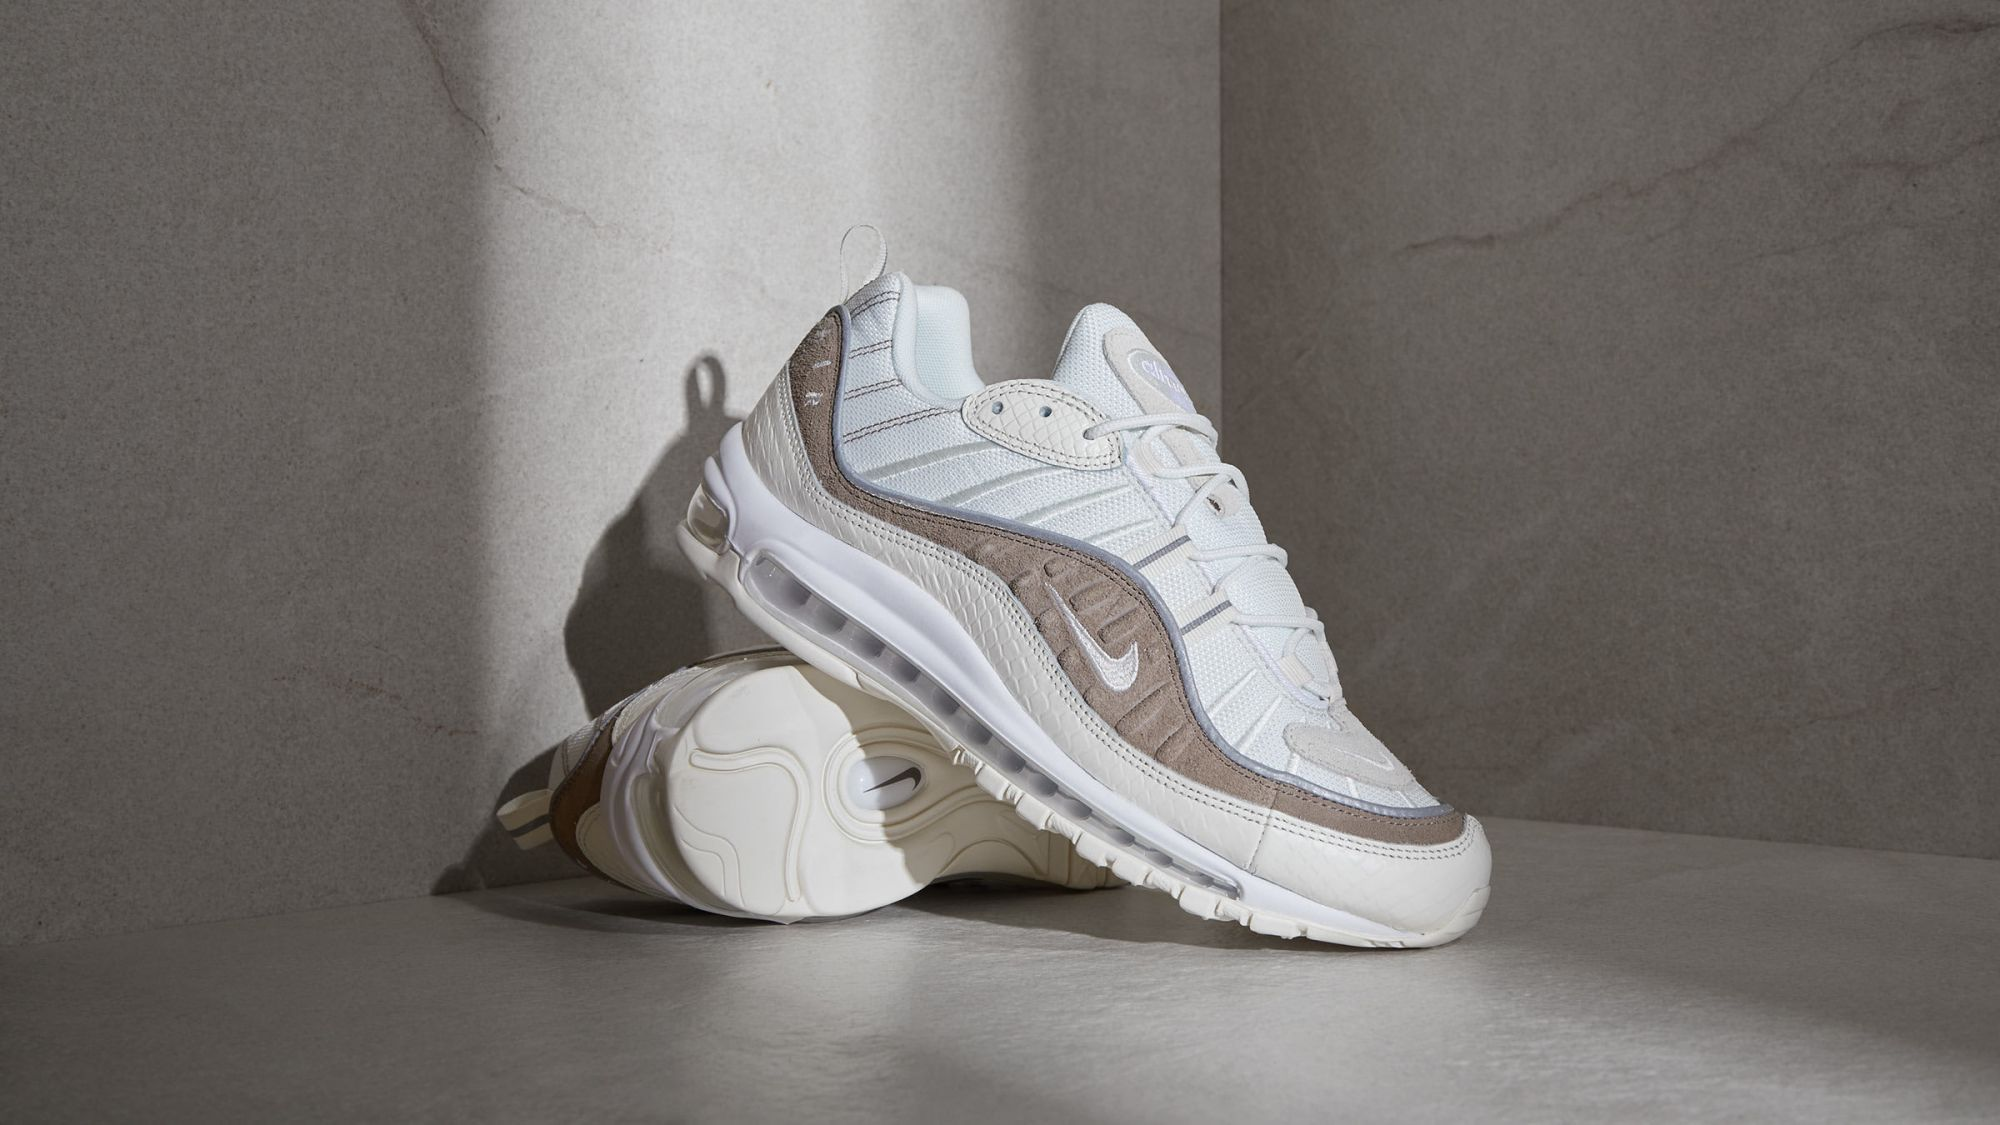 detailed look ac00d 6e70f Another Air Max 98 will be available soon - The new/old Nike ...